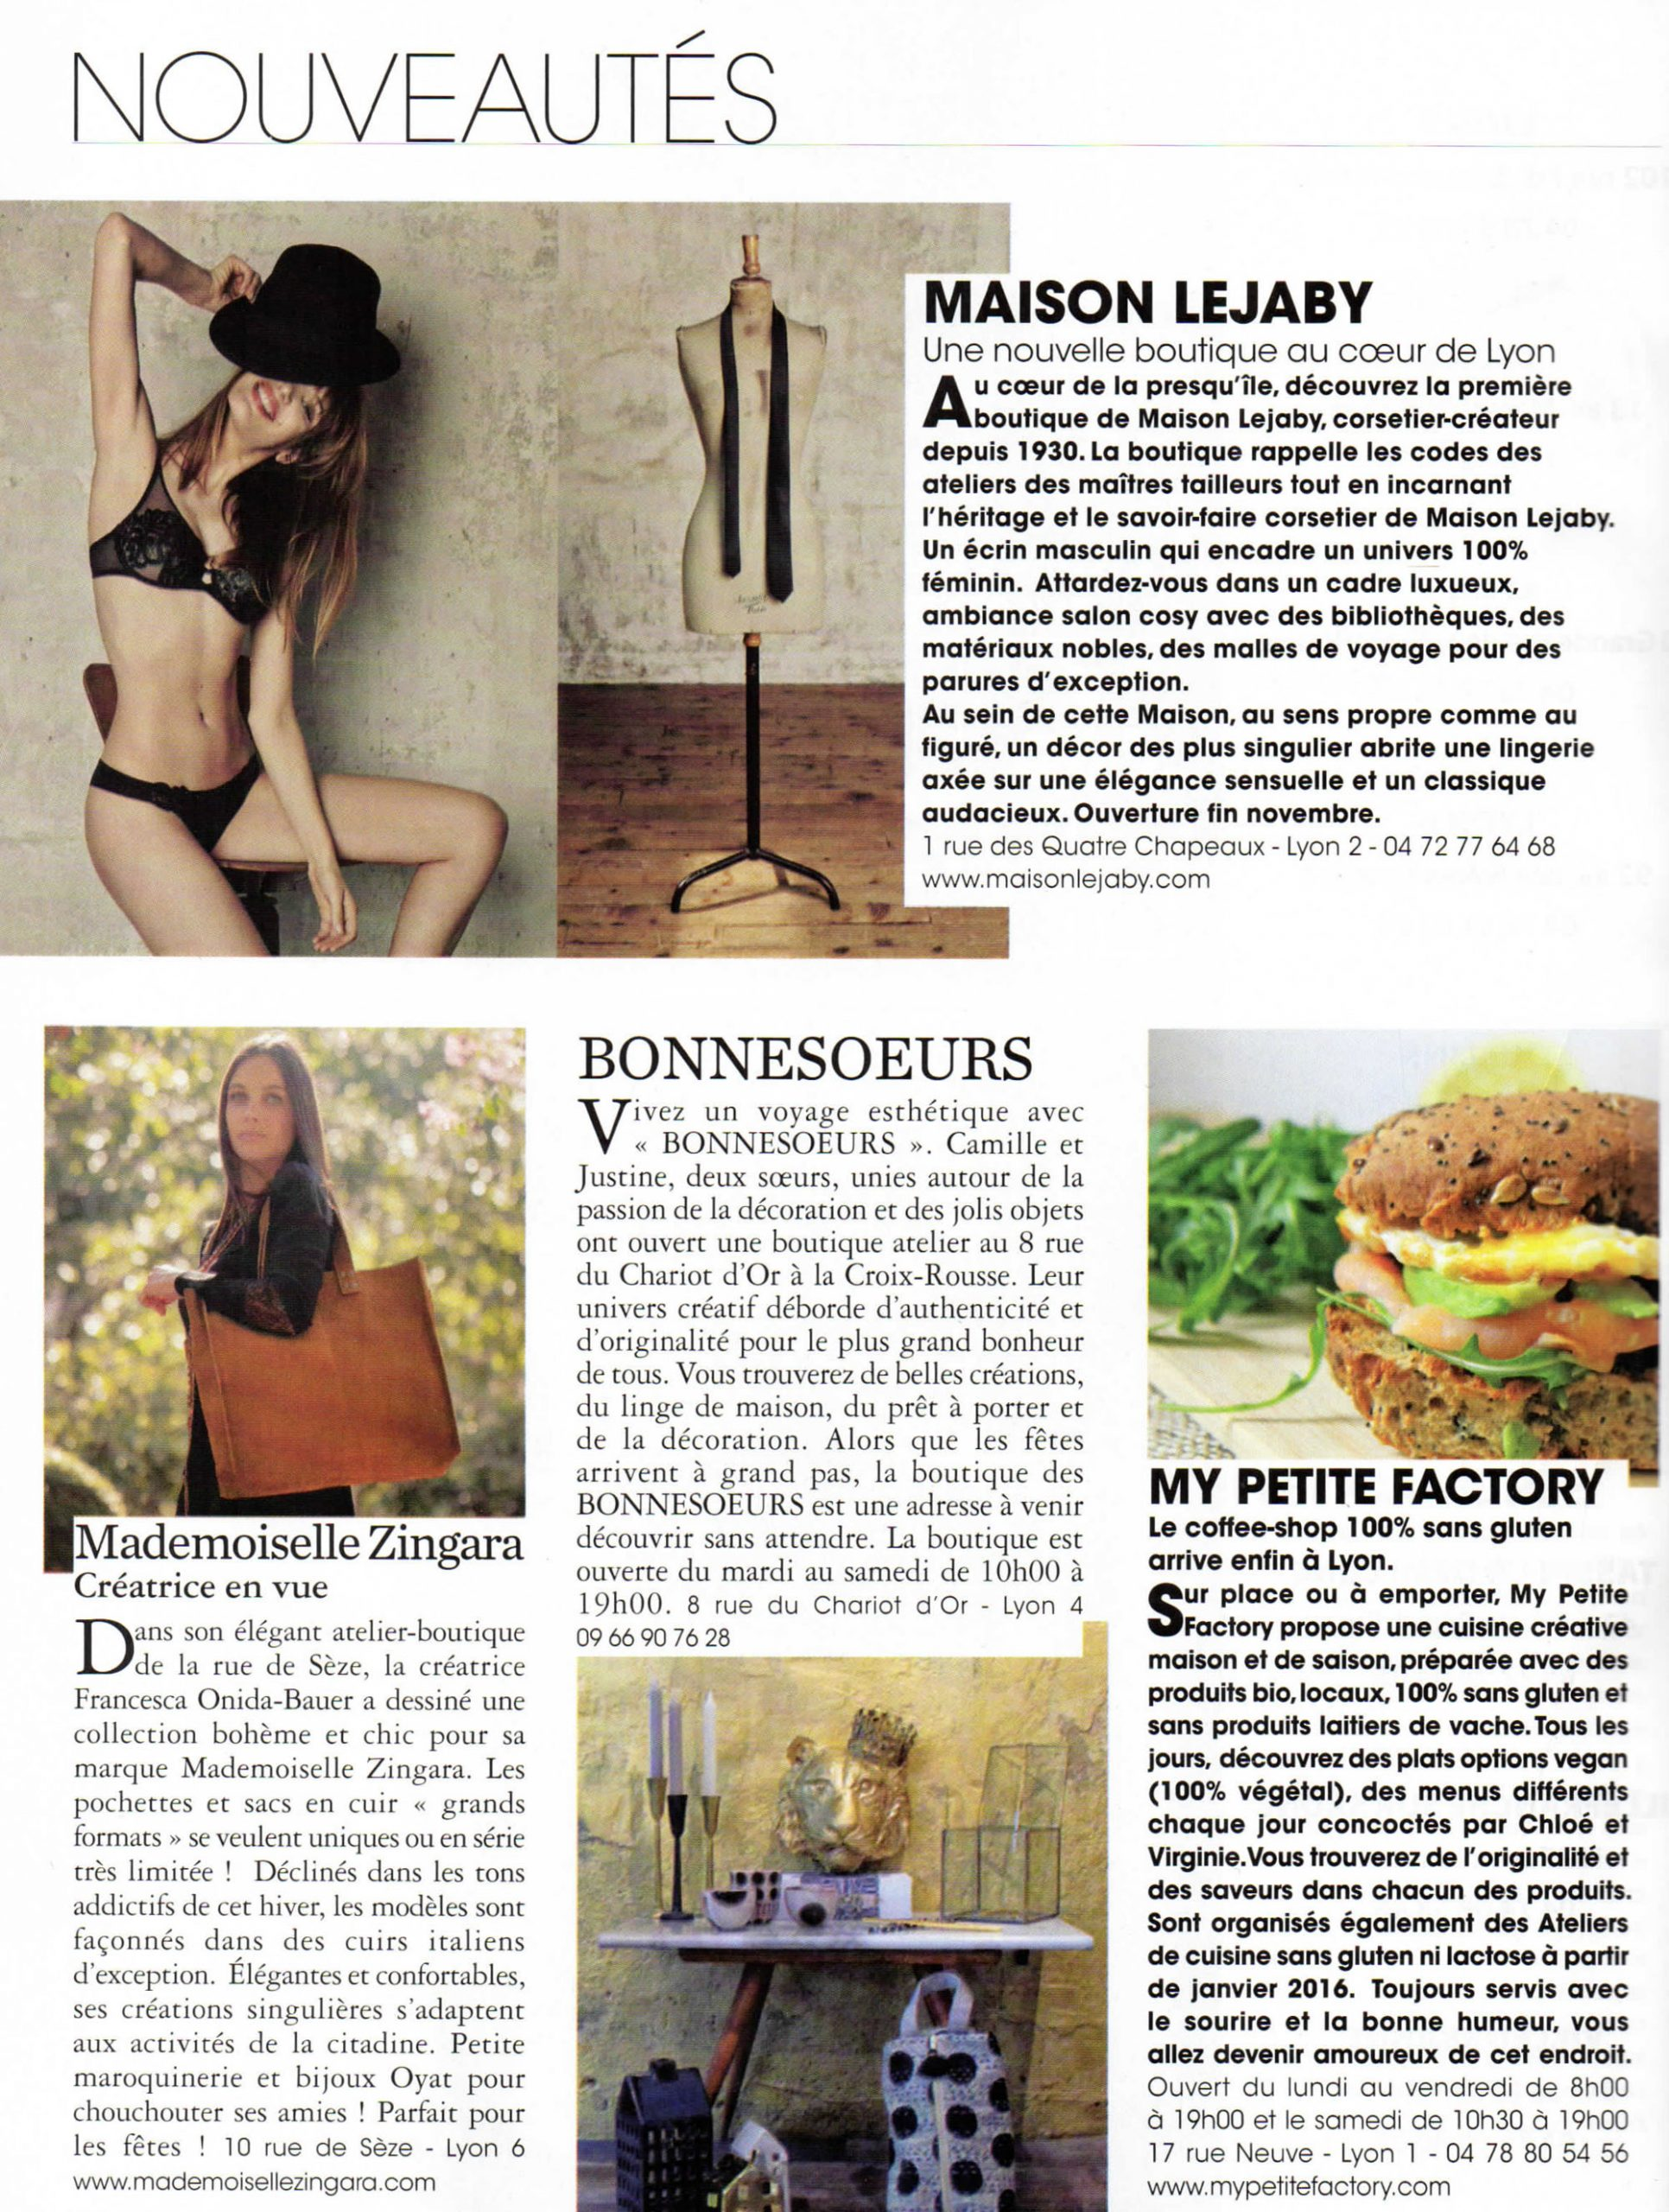 My-Petite-Factory-Marie-Claire-article